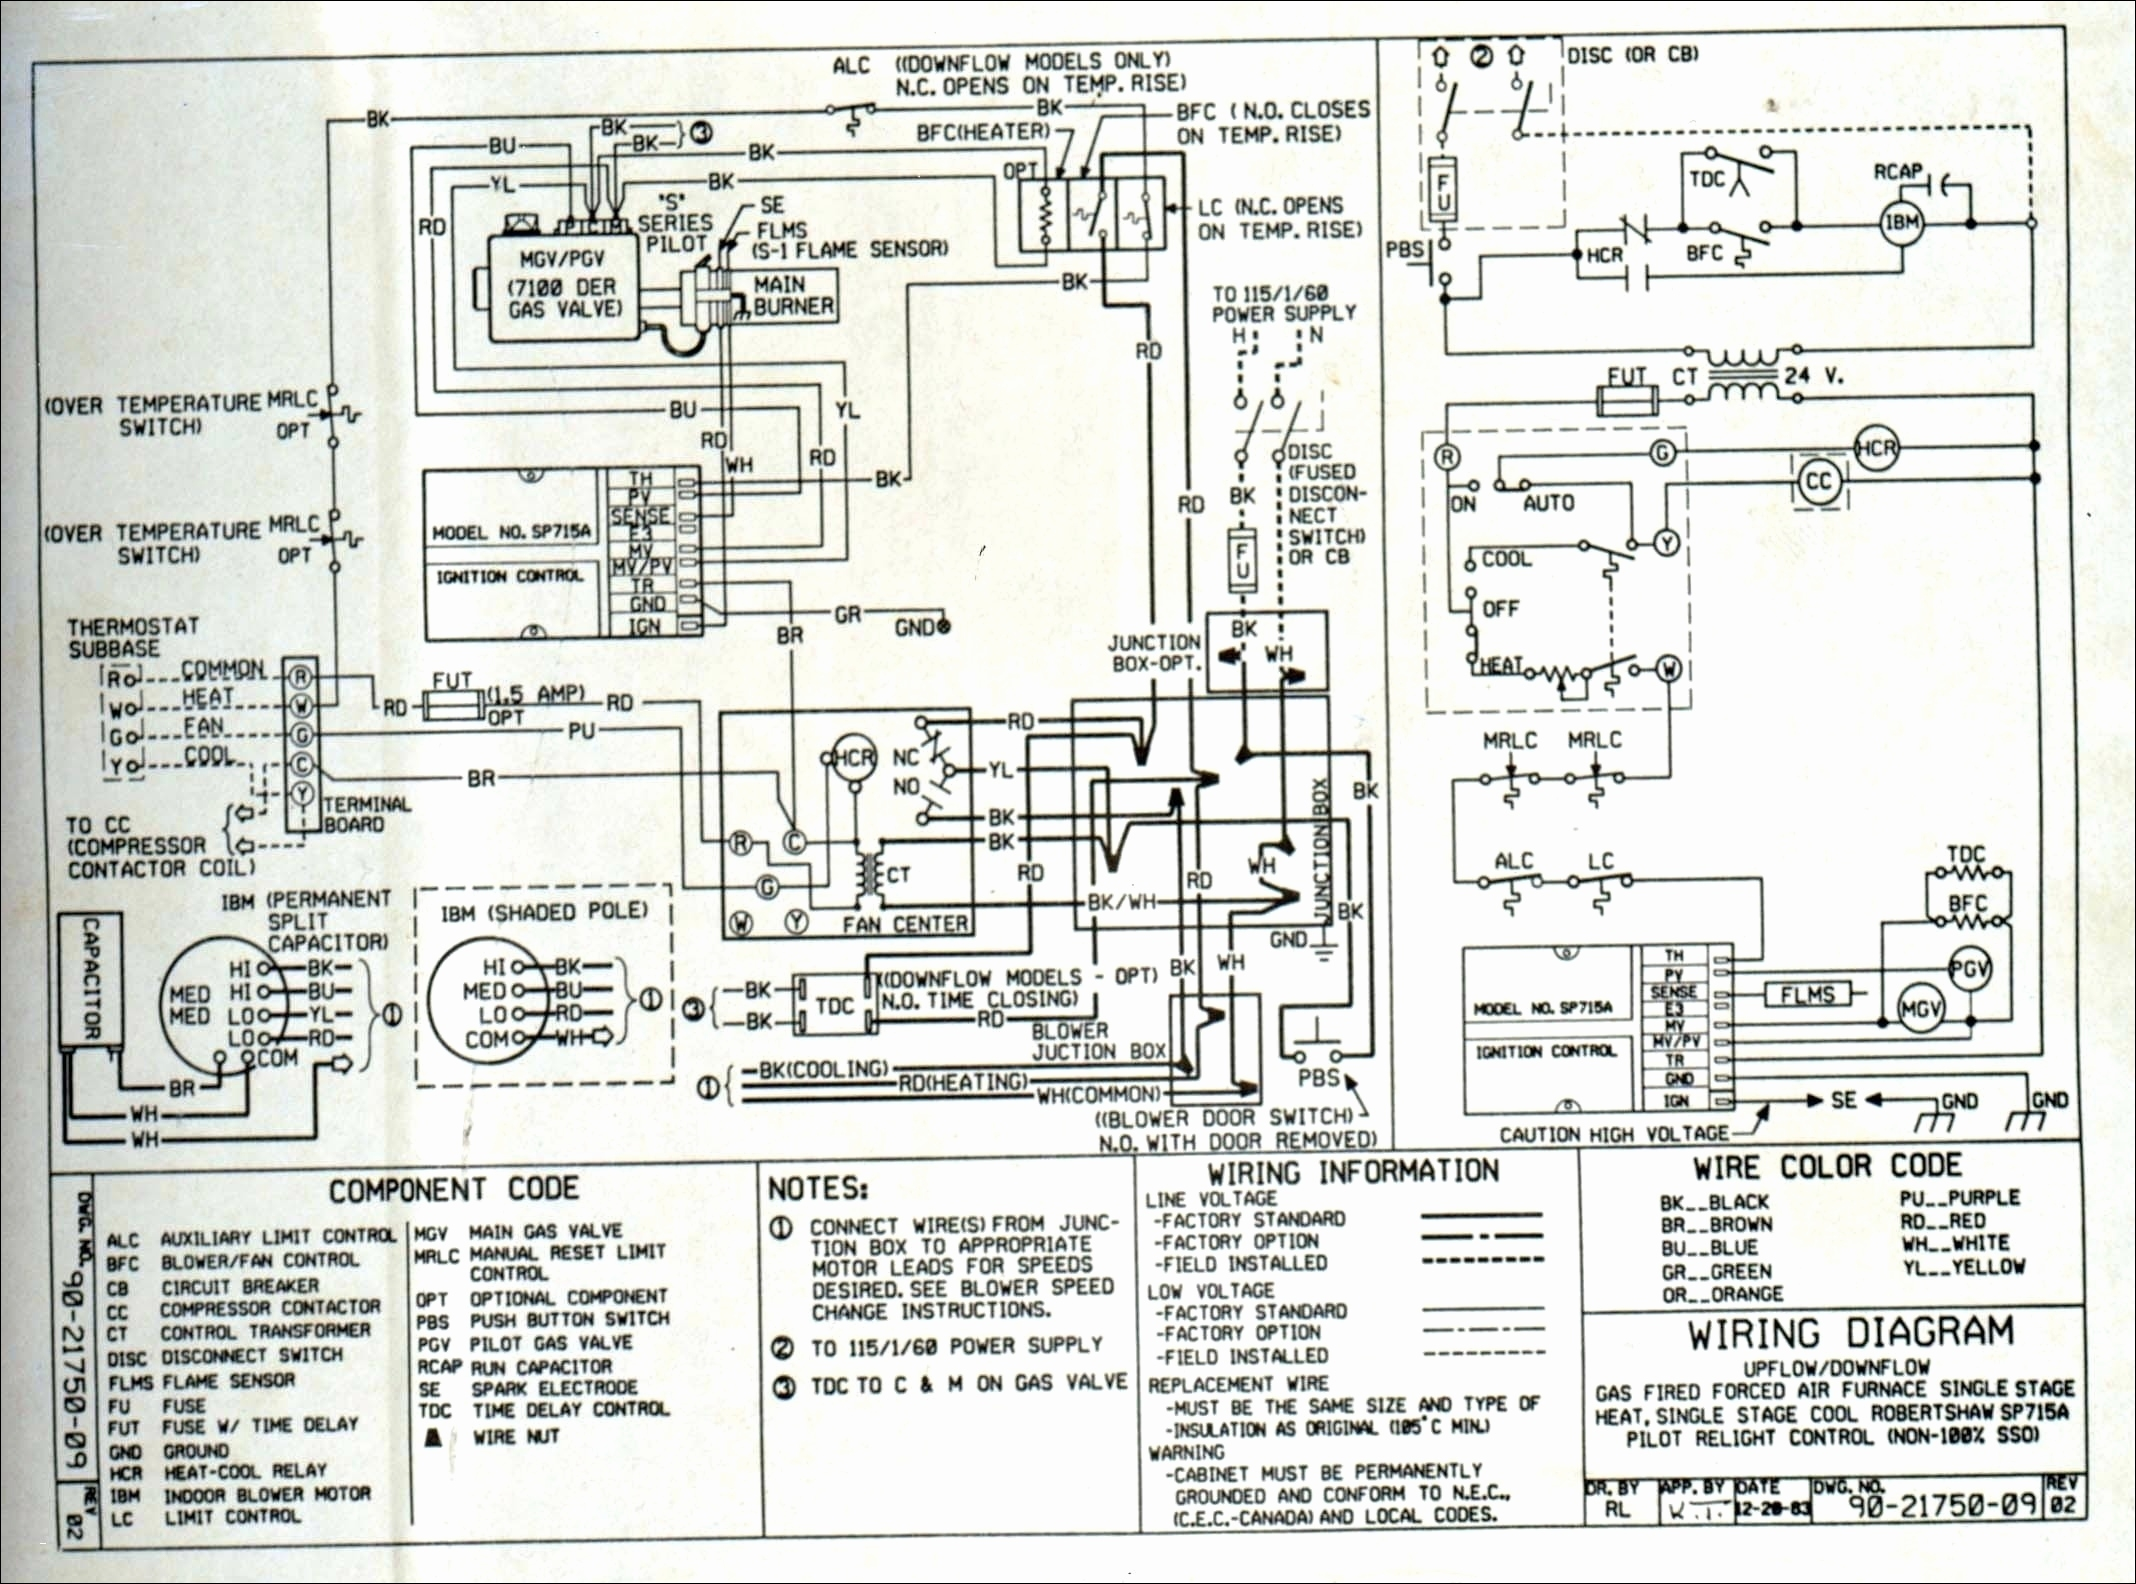 6C0BD89 John Deere 40 S Wiring Diagram Free Download ... on john deere 111h wiring-diagram, john deere 4010 wiring-diagram, john deere lx255 wiring-diagram, john deere 145 wiring-diagram, john deere 322 wiring-diagram, john deere 320 wiring-diagram, john deere gt275 wiring-diagram, john deere l110 wiring-diagram, john deere z225 wiring-diagram, john deere 4440 wiring-diagram, john deere 425 wiring-diagram, john deere b wiring-diagram, john deere rx75 wiring-diagram, john deere m wiring-diagram, john deere 185 wiring-diagram, john deere 420 wiring-diagram, john deere 325 wiring-diagram, john deere 318 wiring-diagram, john deere 345 wiring-diagram, john deere 155c wiring-diagram,